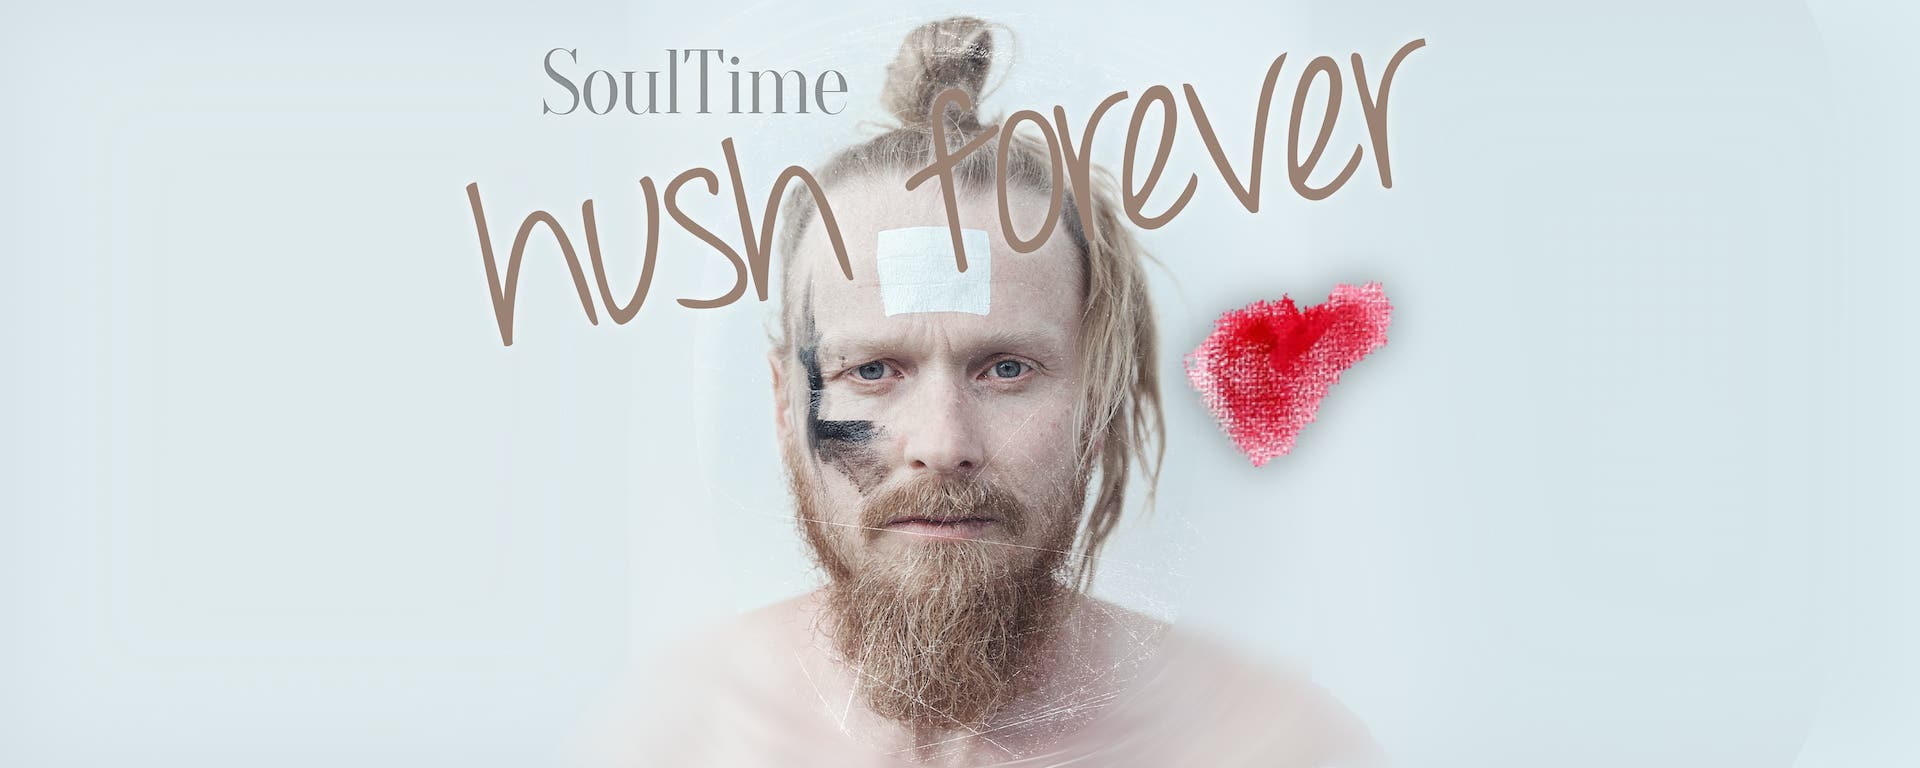 Soulful-SoulTime